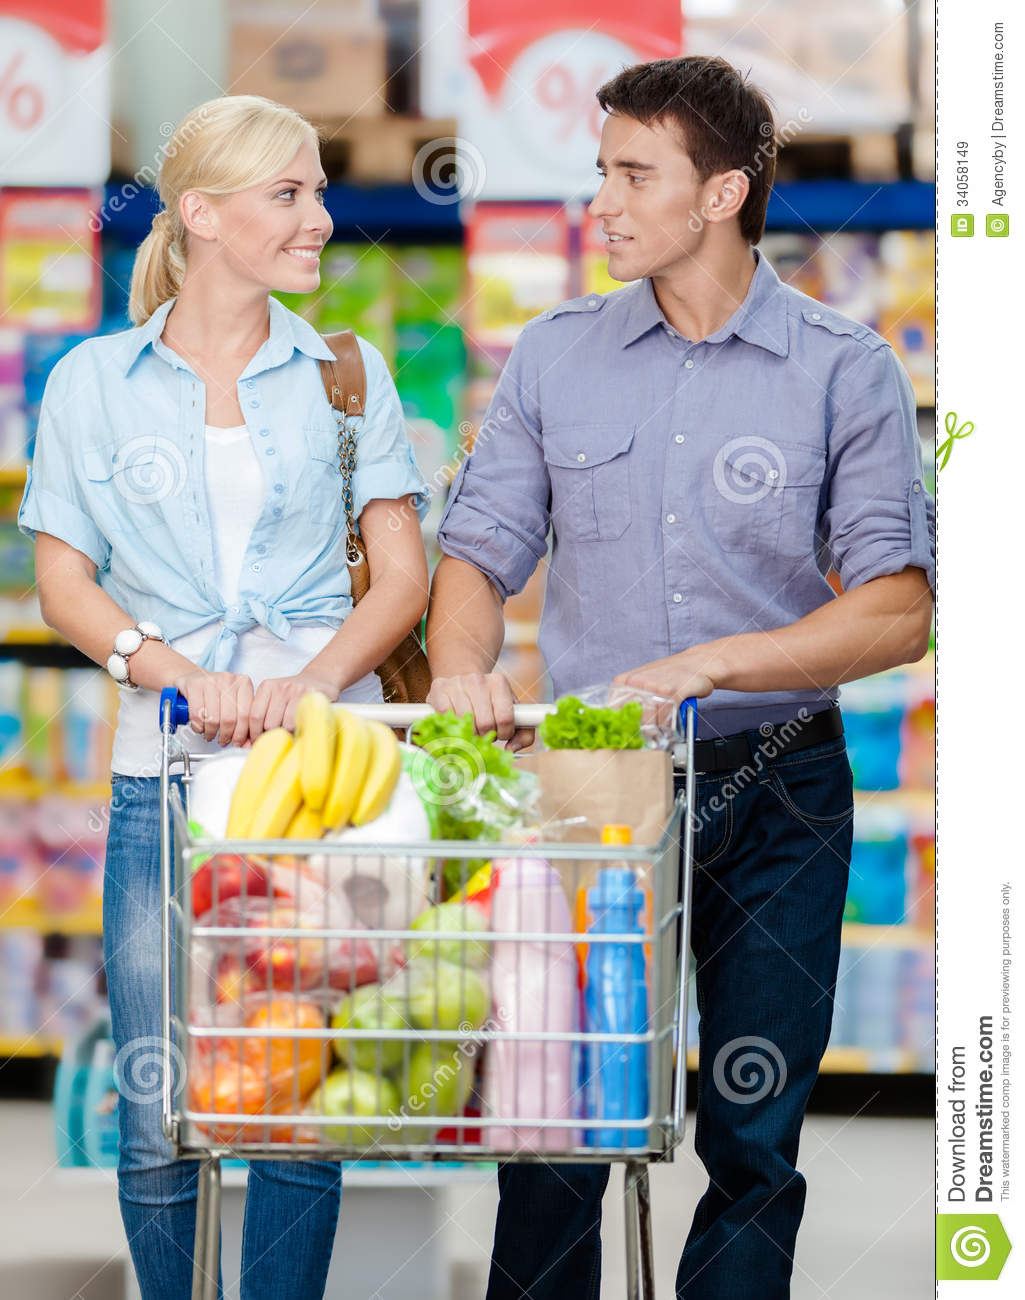 Couple In The Shopping Mall With Cart Full Of Food Stock